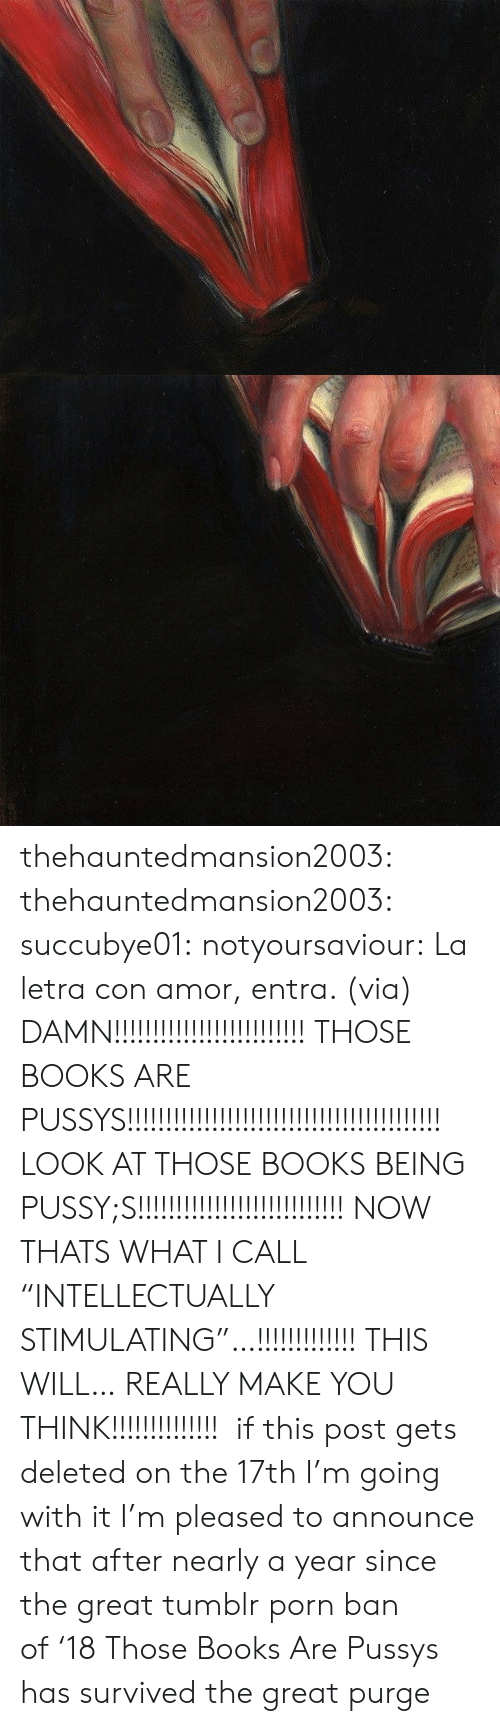 "Books, Facebook, and Pussy: thehauntedmansion2003:  thehauntedmansion2003:  succubye01:  notyoursaviour:  La letra con amor, entra. (via)  DAMN!!!!!!!!!!!!!!!!!!!!!!!!! THOSE BOOKS ARE PUSSYS!!!!!!!!!!!!!!!!!!!!!!!!!!!!!!!!!!!!!!!!! LOOK AT THOSE BOOKS BEING PUSSY;S!!!!!!!!!!!!!!!!!!!!!!!!!!! NOW THATS WHAT I CALL ""INTELLECTUALLY STIMULATING""…!!!!!!!!!!!!! THIS WILL… REALLY MAKE YOU THINK!!!!!!!!!!!!!!   if this post gets deleted on the 17th I'm going with it  I'm pleased to announce that after nearly a year since the great tumblr porn ban of '18 Those Books Are Pussys has survived the great purge"